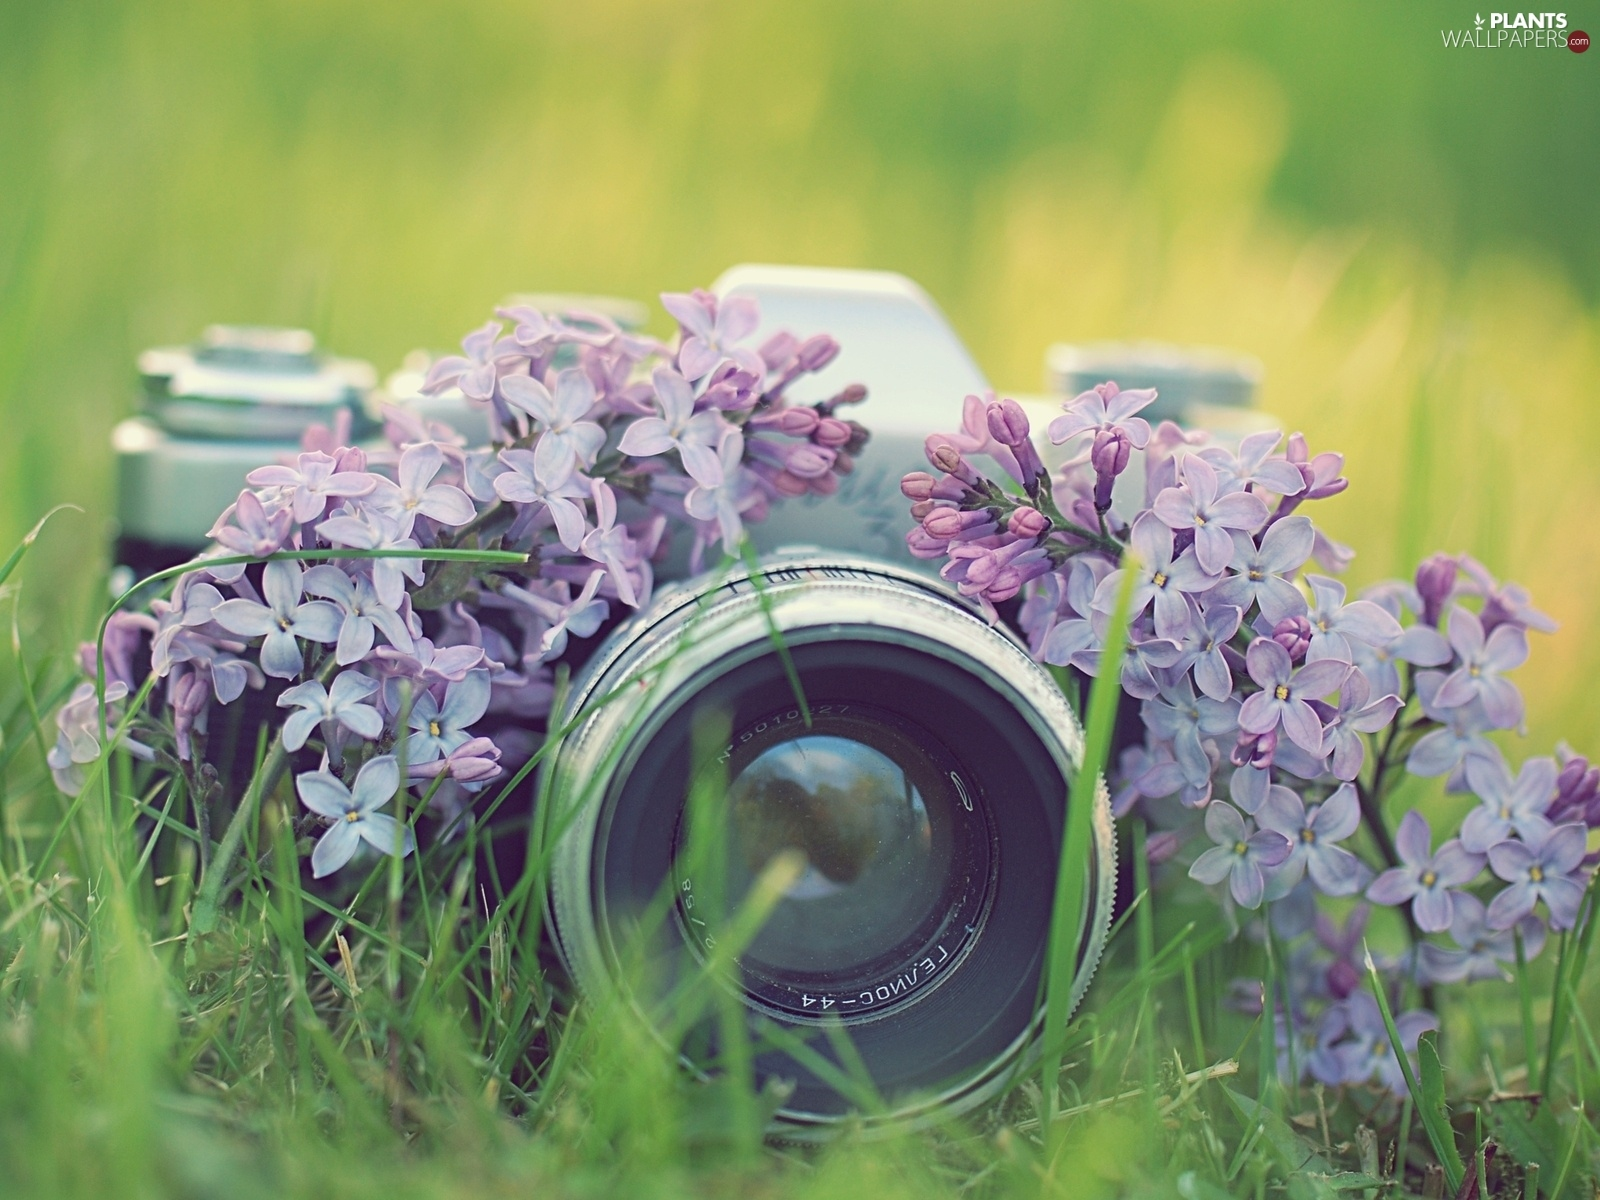 Flowers, Camera, photographic, lilac